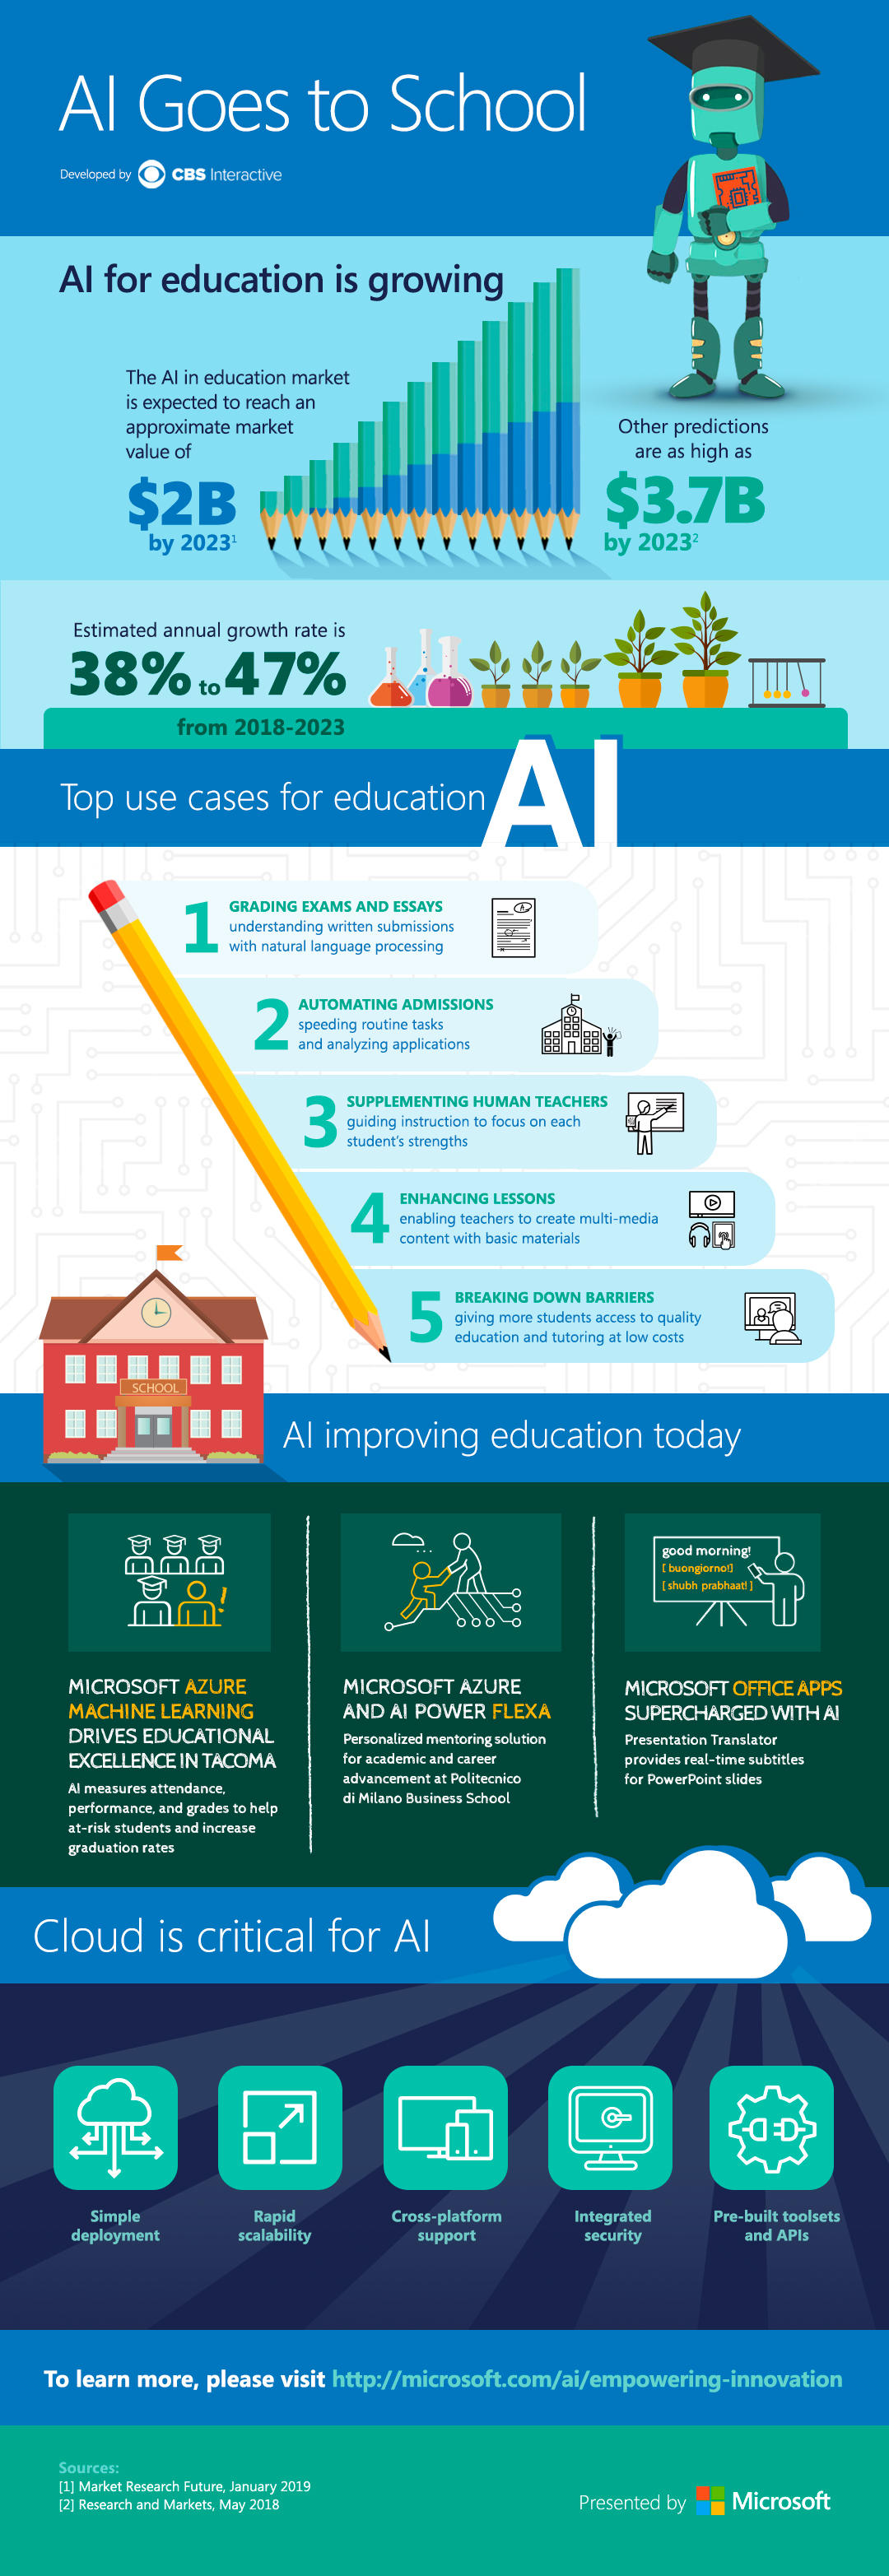 Microsoft AI for Education Infographic